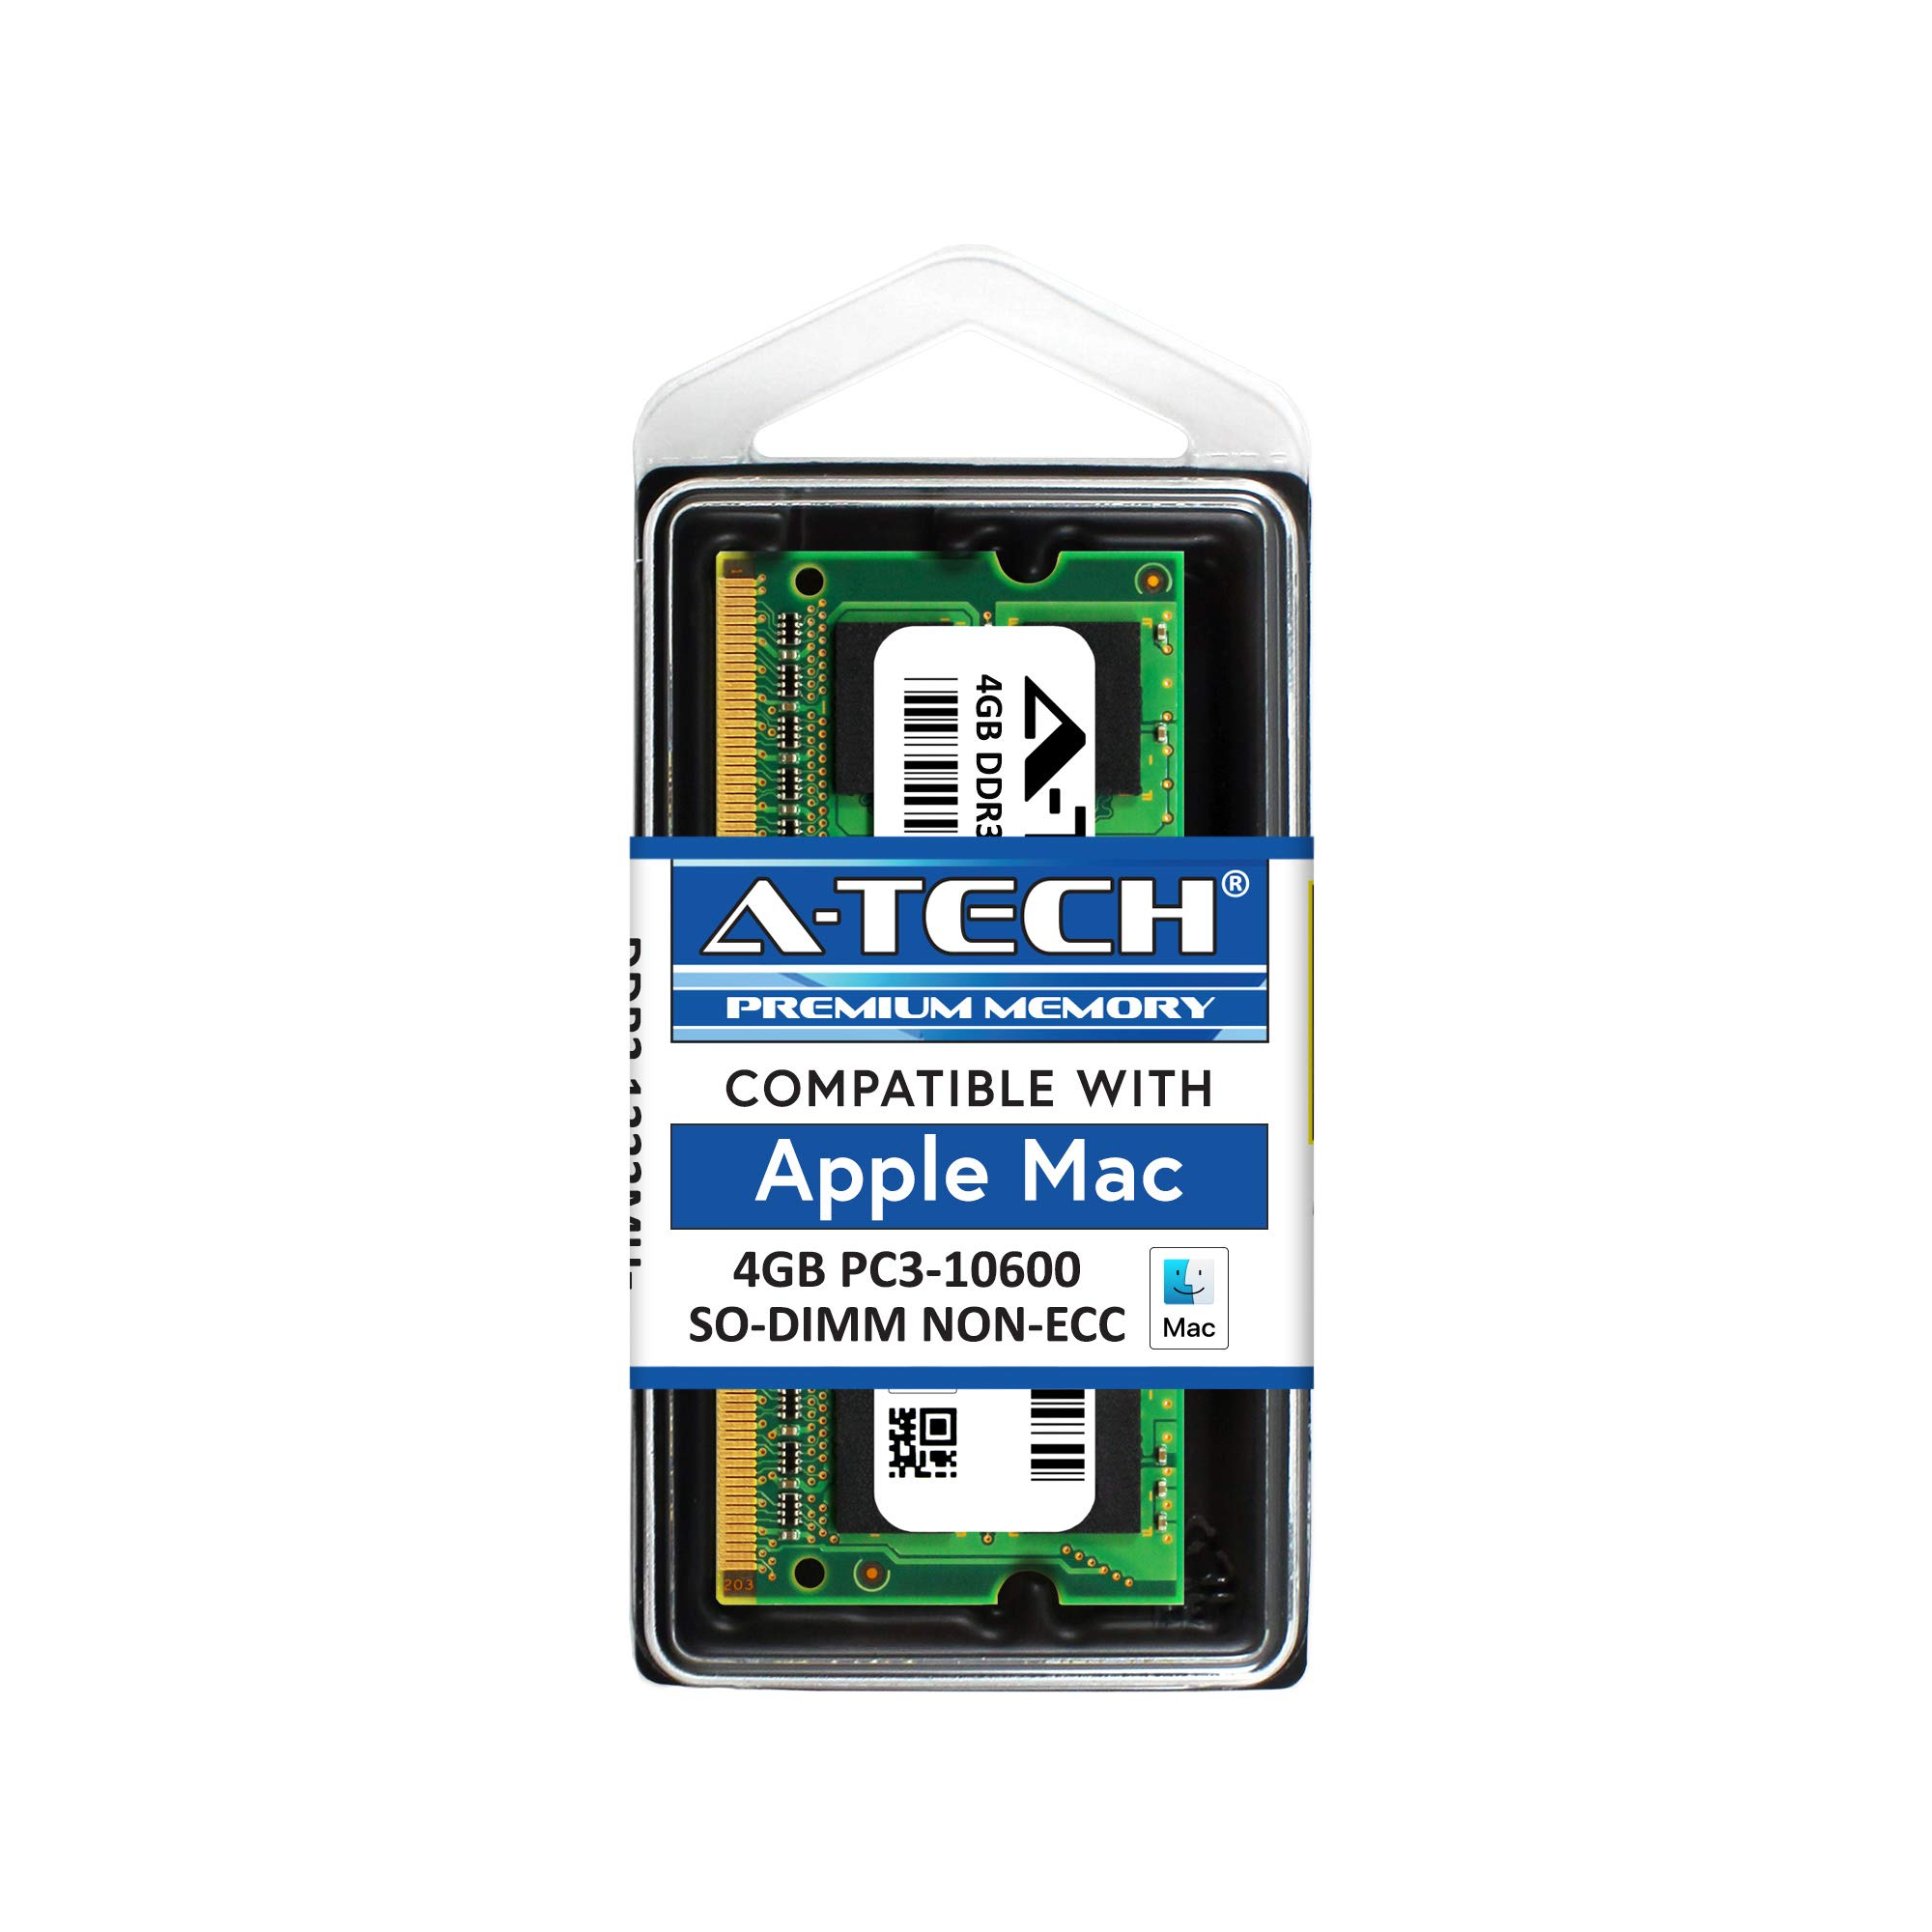 Memoria Ram 4gb A-tech Para Apple Modulo Pc3-10600 Mac Mini iMac Macbook Pro Mid 2010 Late 2011 A1286 Md311ll/a A1297 Mc